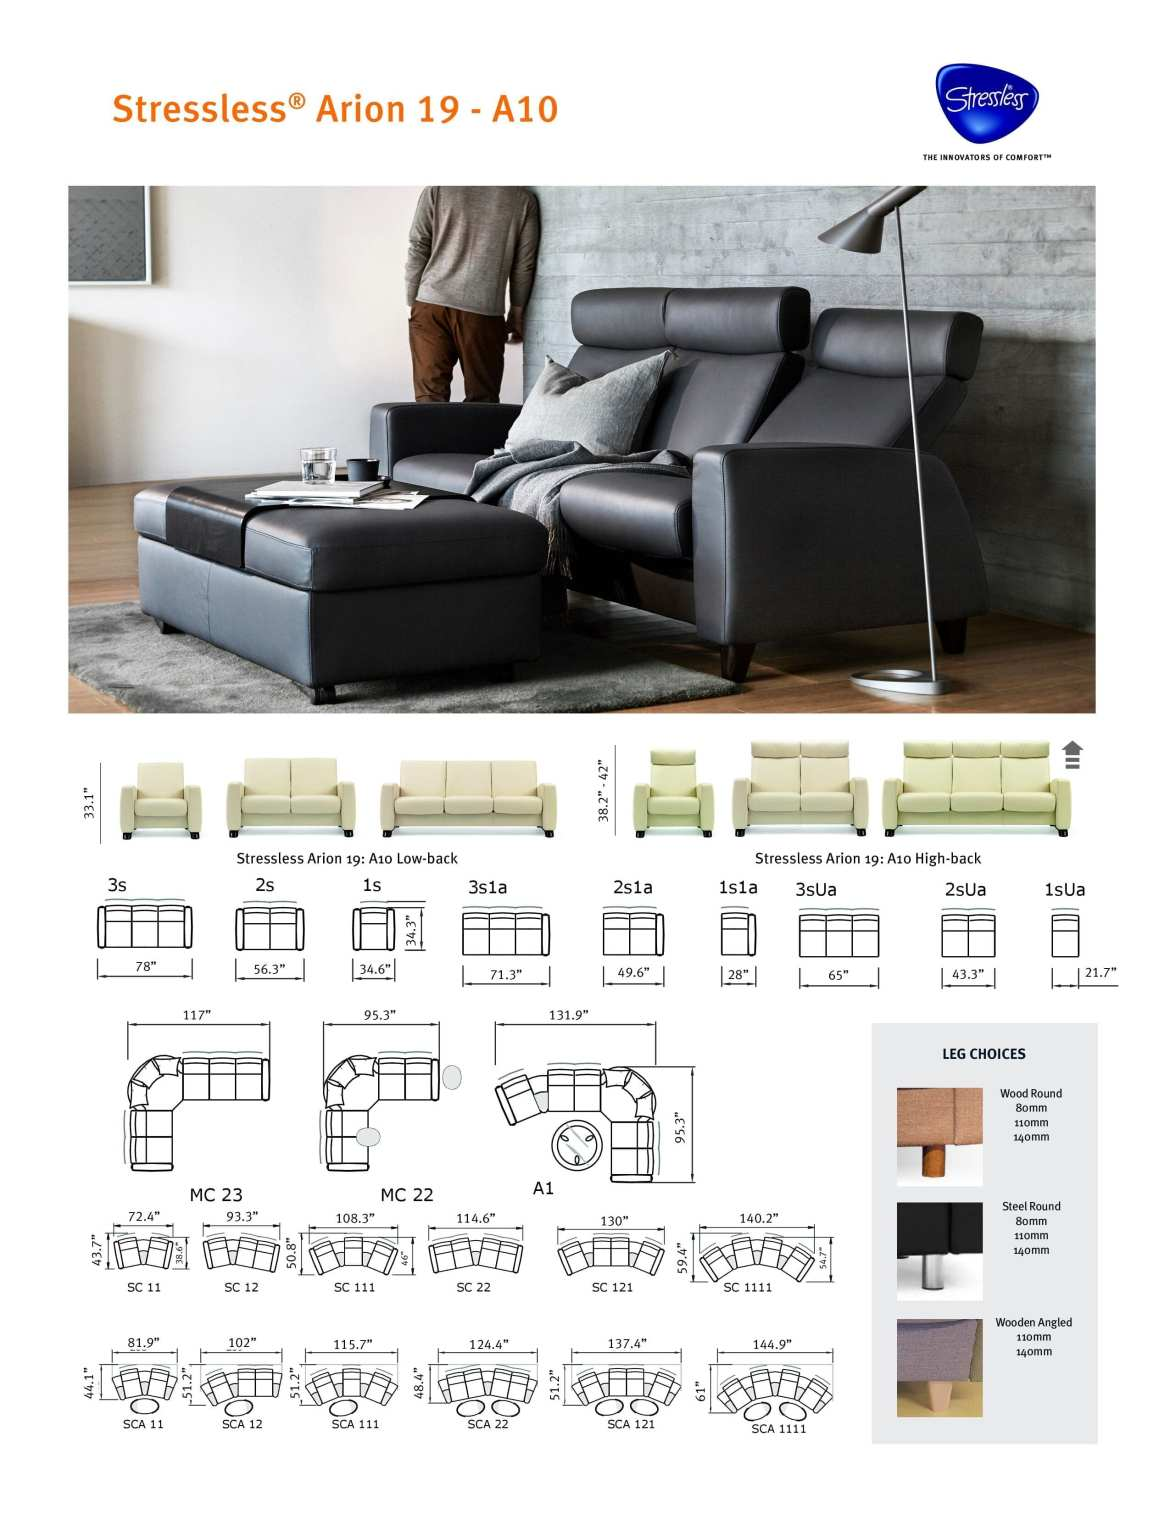 Stressless® Arion 19 A10 Product Sheet